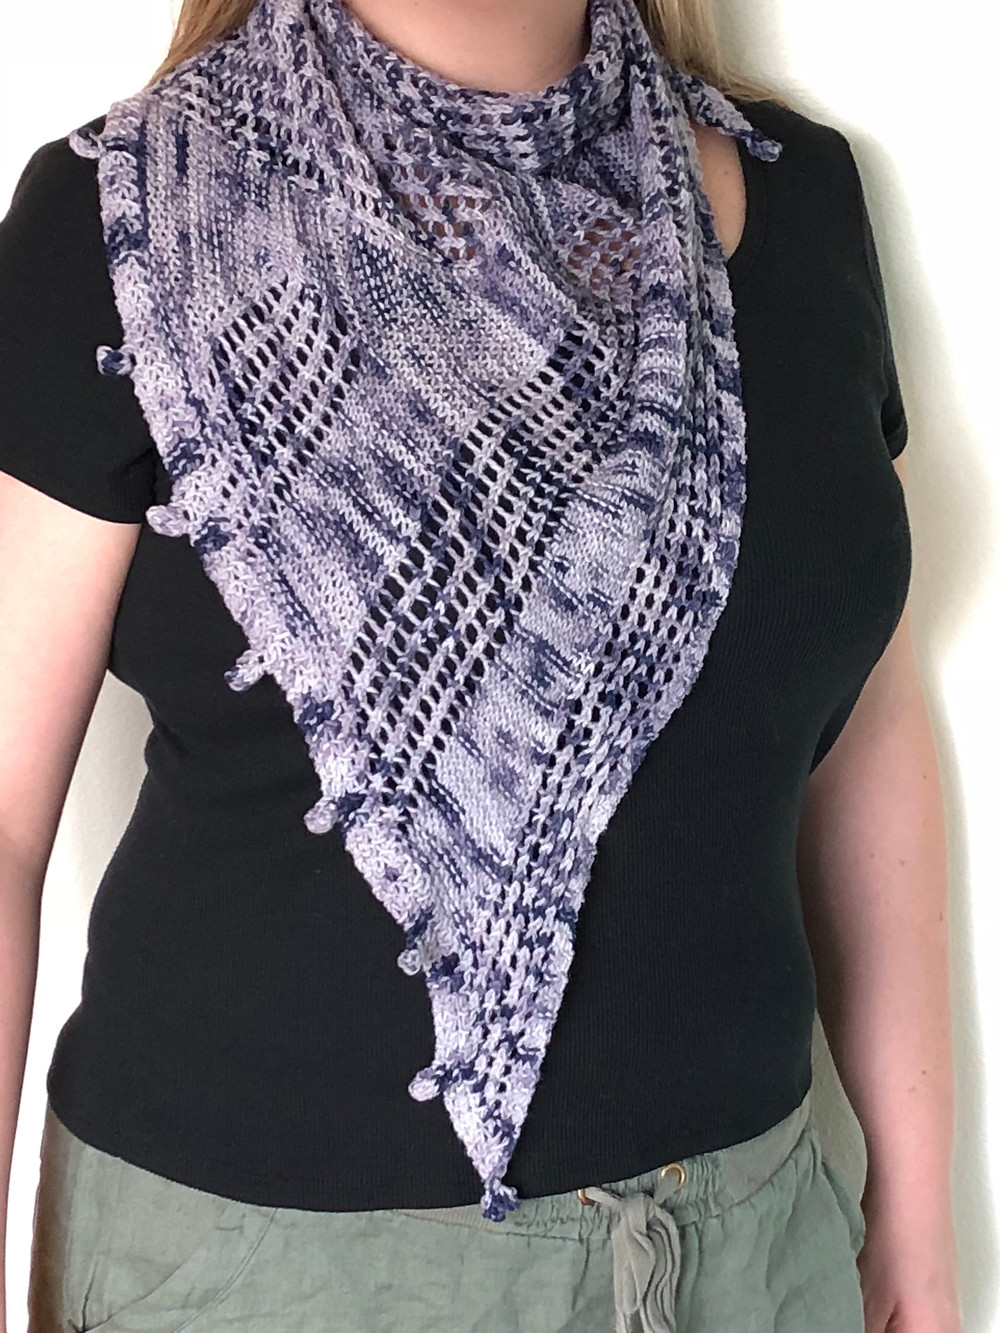 A textural hand-knit shawl in shades of purple with a bobble bind-off edging.